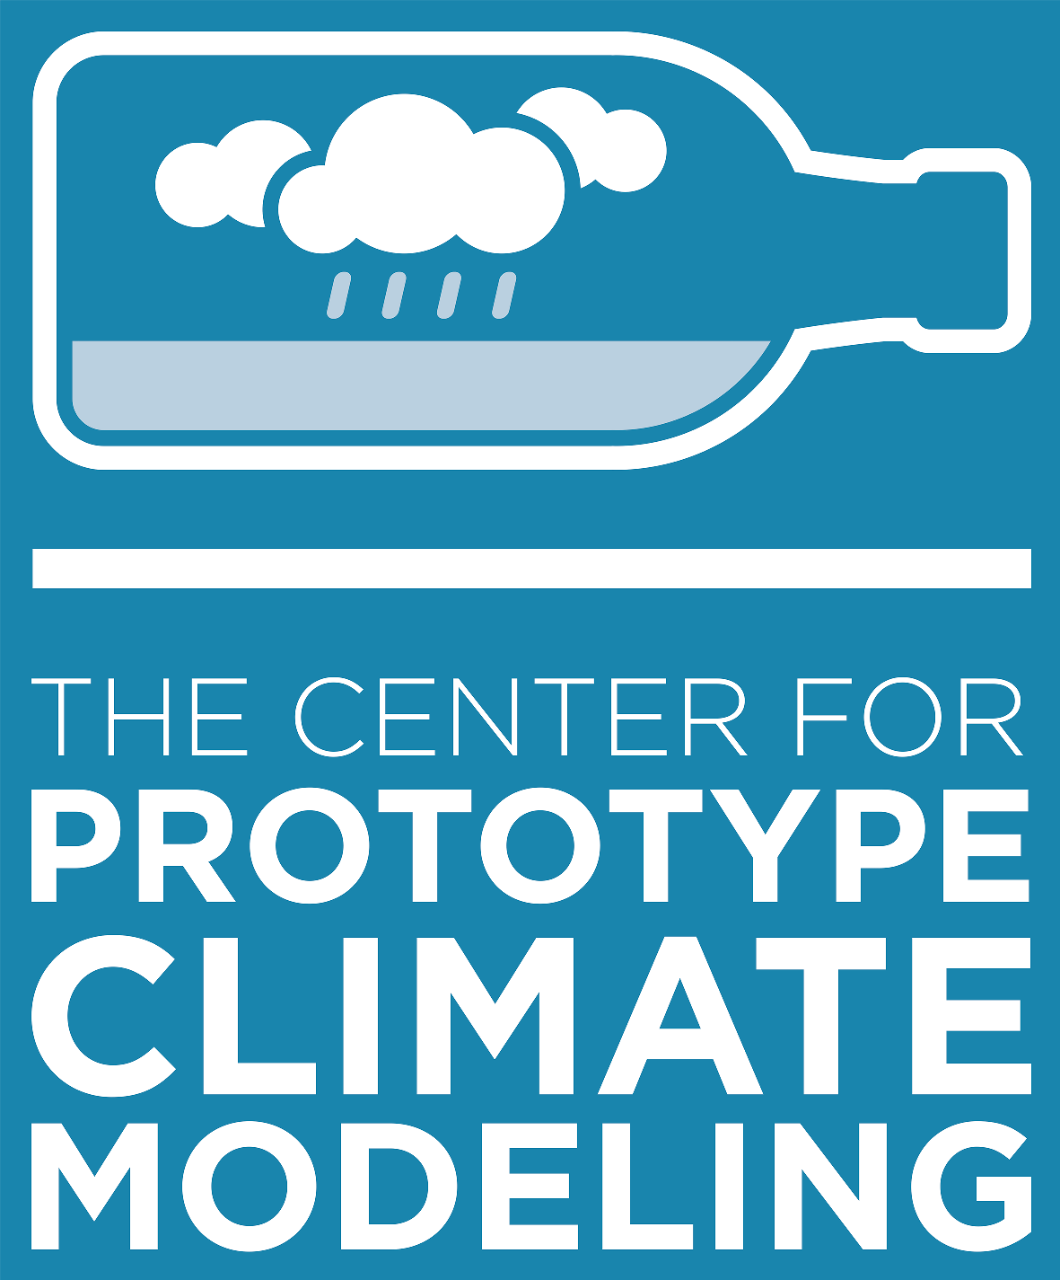 https://nyuad.nyu.edu/en/research/centers-labs-and-projects/the-center-for-prototype-climate-modeling.html